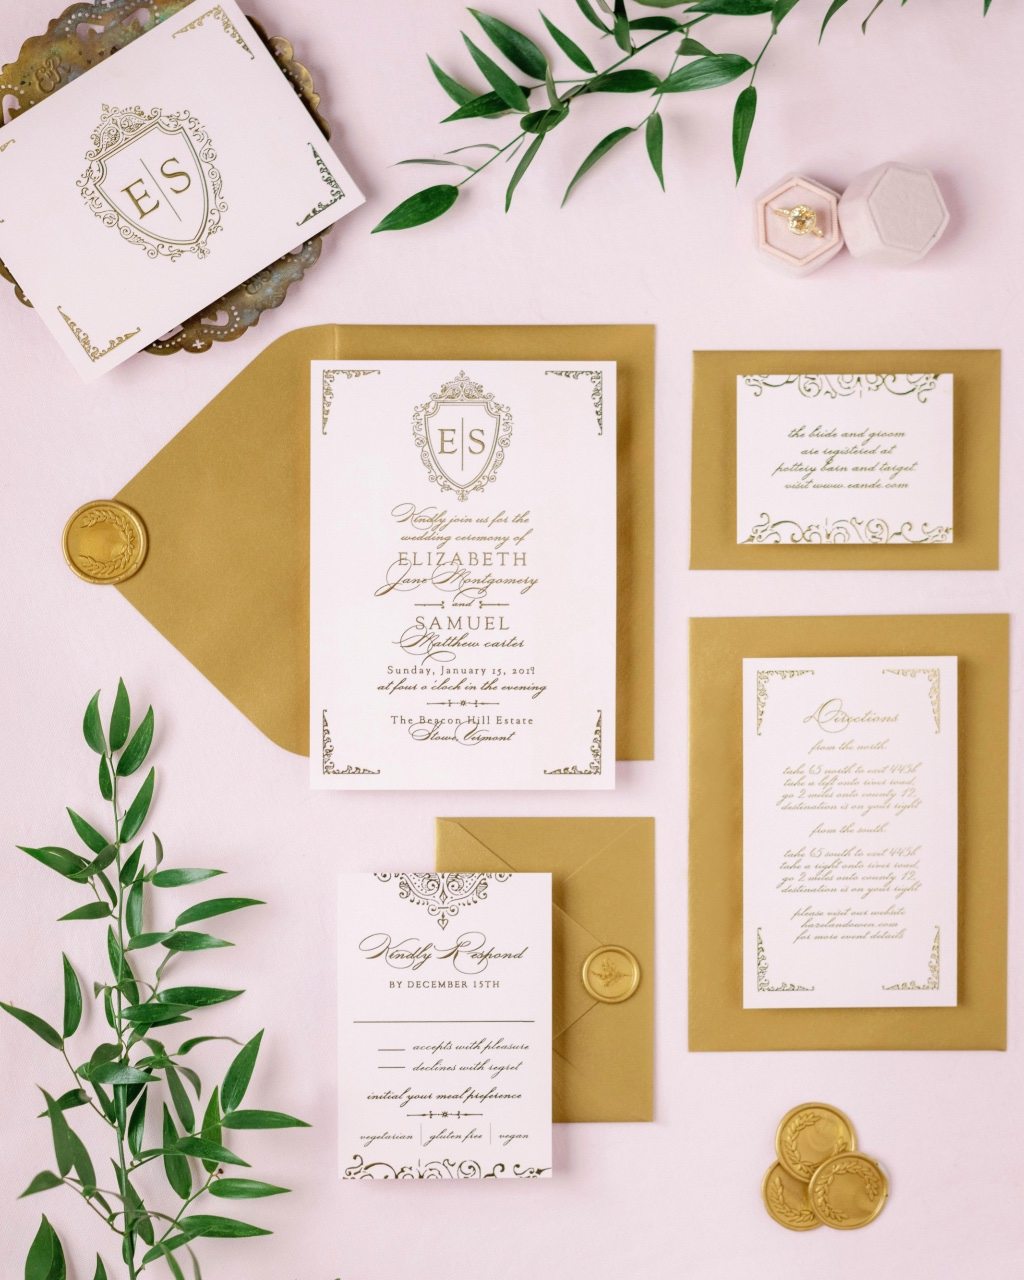 Our Scrolling Monogram Foil Wedding Invitation Suite is perfect for your classic nuptials! A little touch of gold foil make a big impression